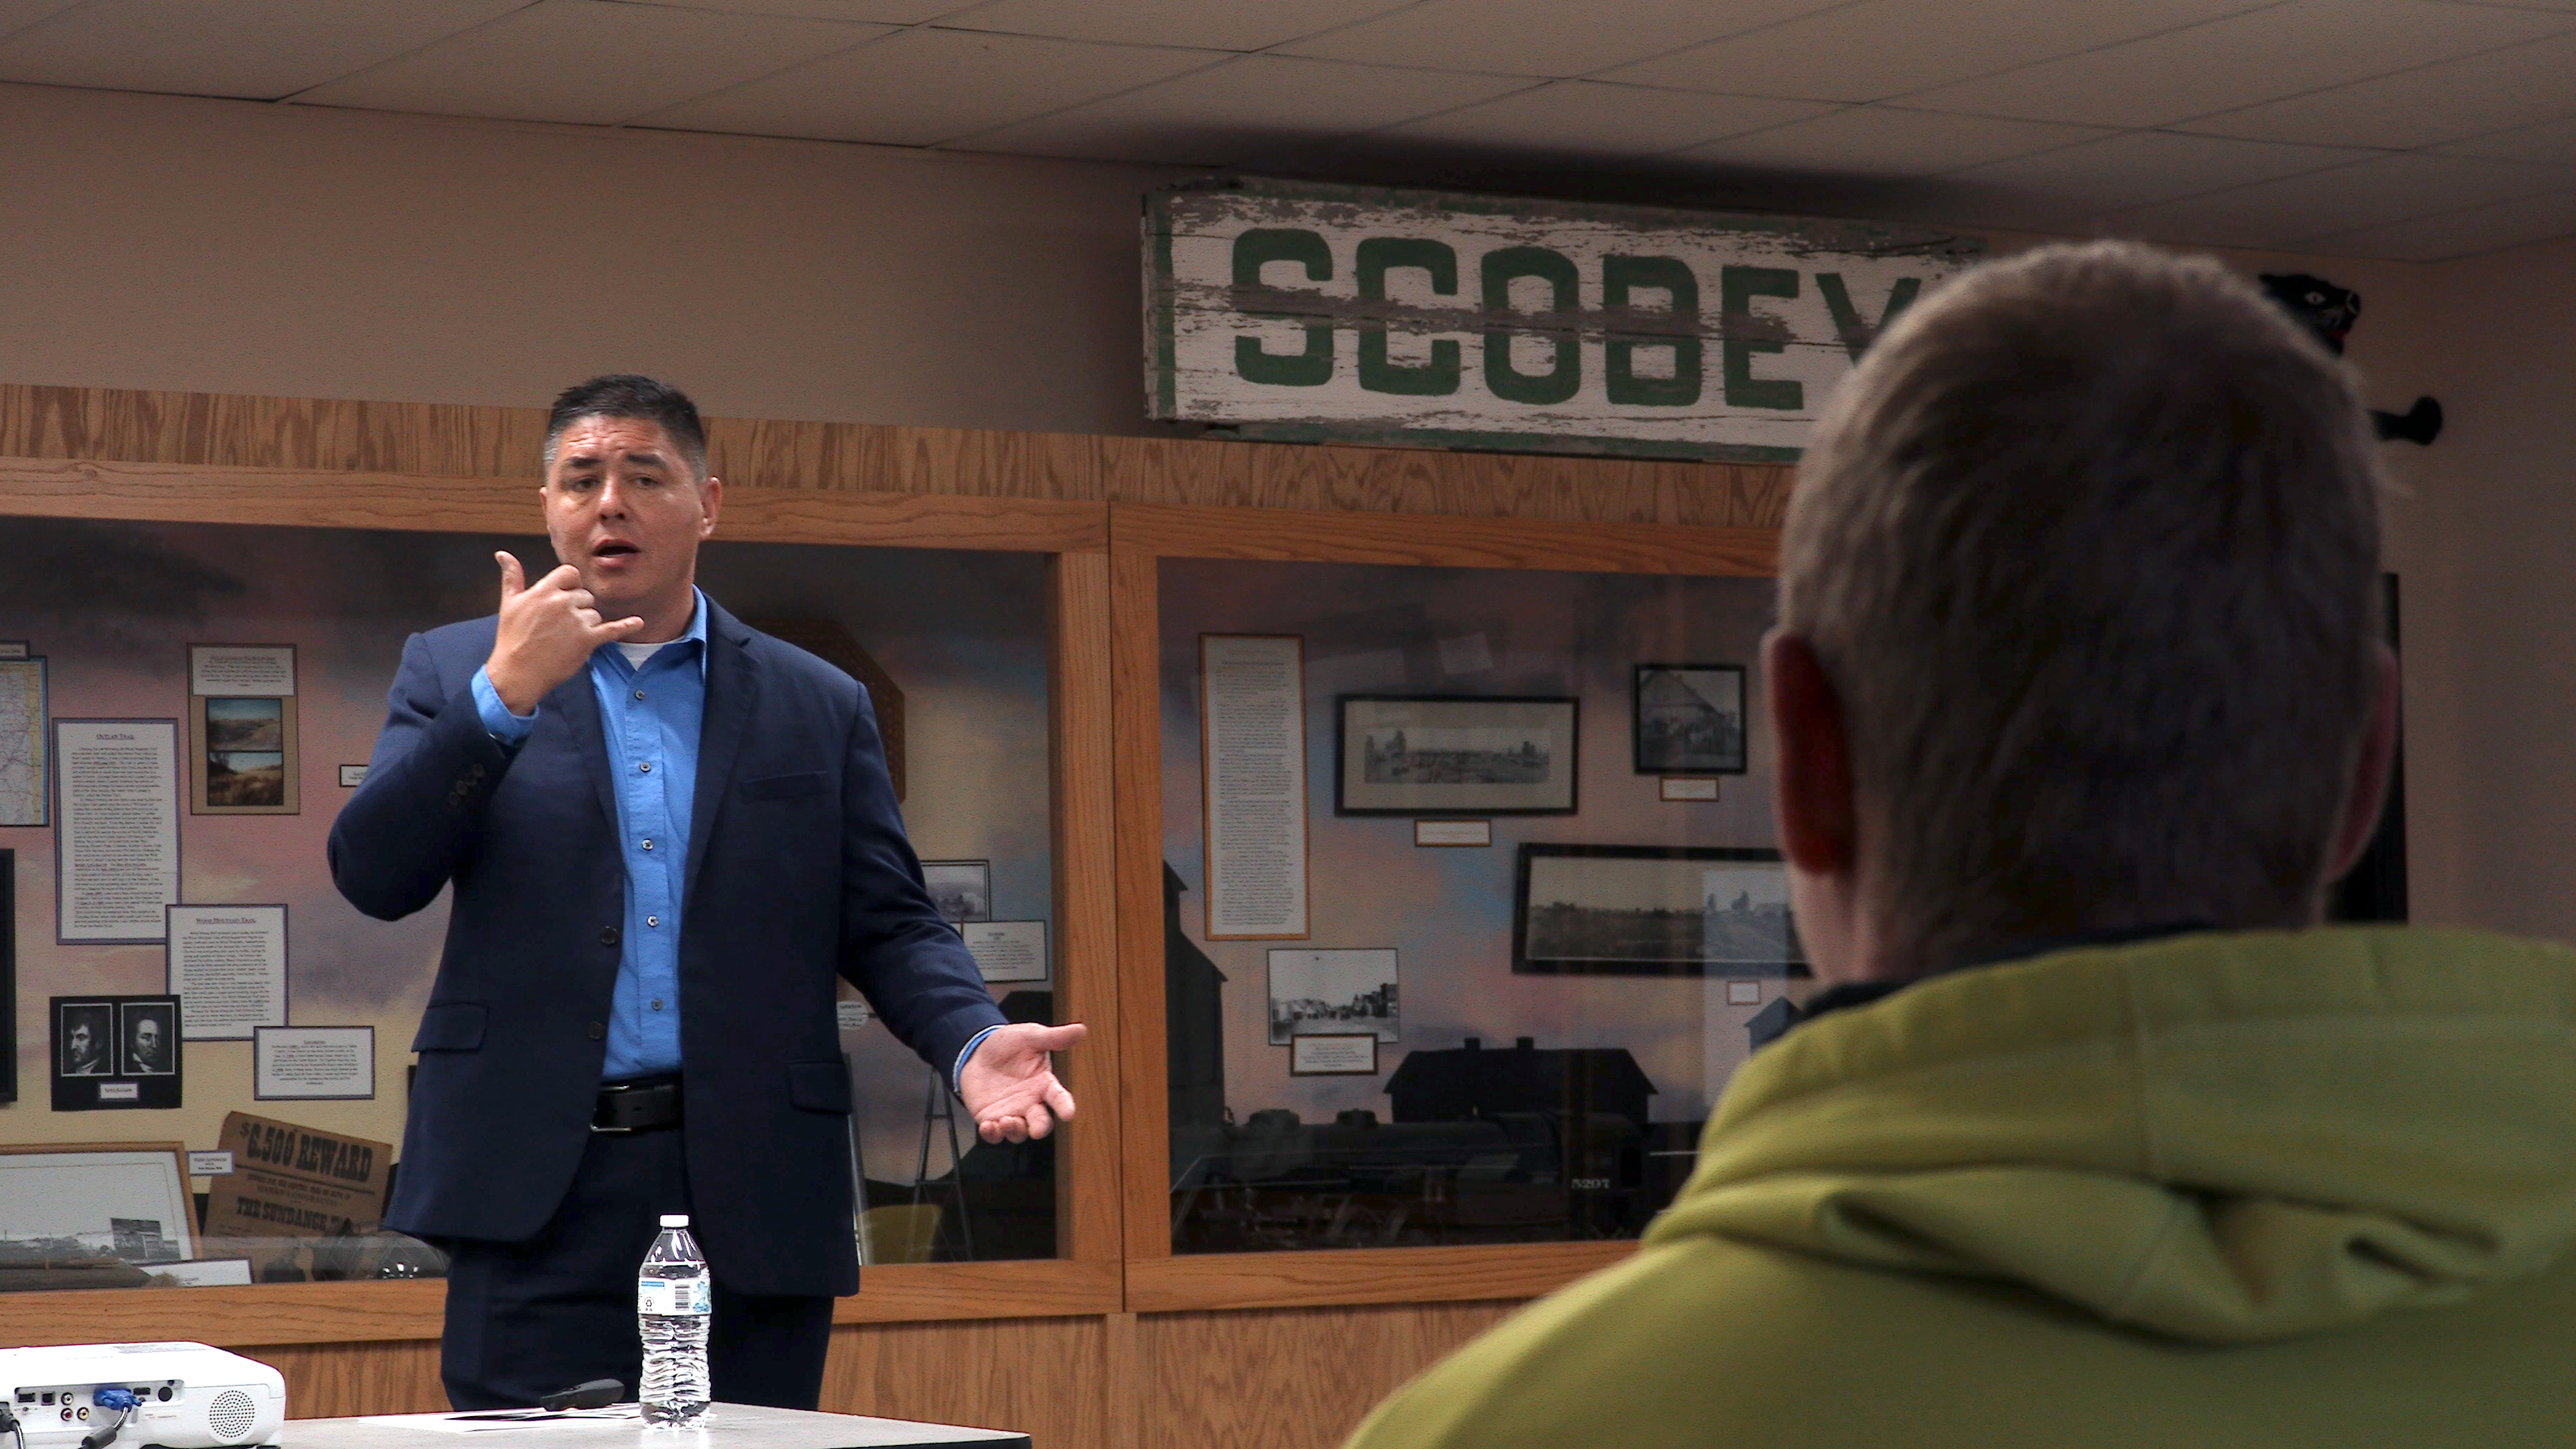 Frederick Lee presents a suicide prevention program called QPR (Question, Persuade, Refer) in Scobey, Montana. Organizations offering youth suicide intervention and prevention initiatives are struggling to sustain the same level of services during the pandemic.